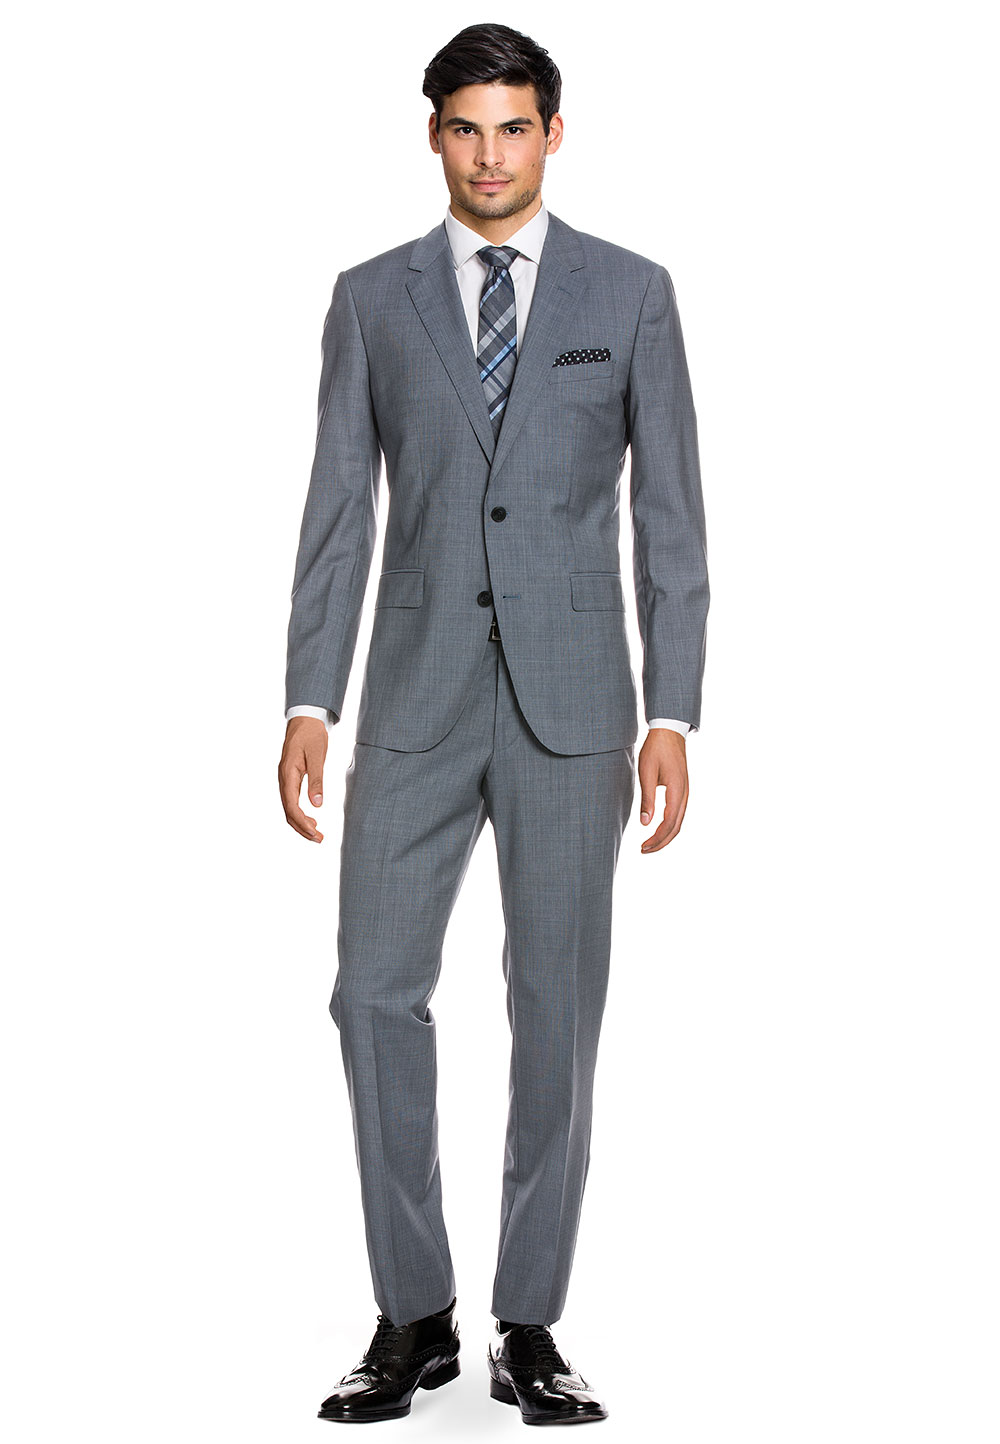 Tommy Hilfiger Anzug, Wolle, Fitted Fit grau   Bekleidung > Anzüge & Smokings > Anzüge   Grau   Tommy Hilfiger